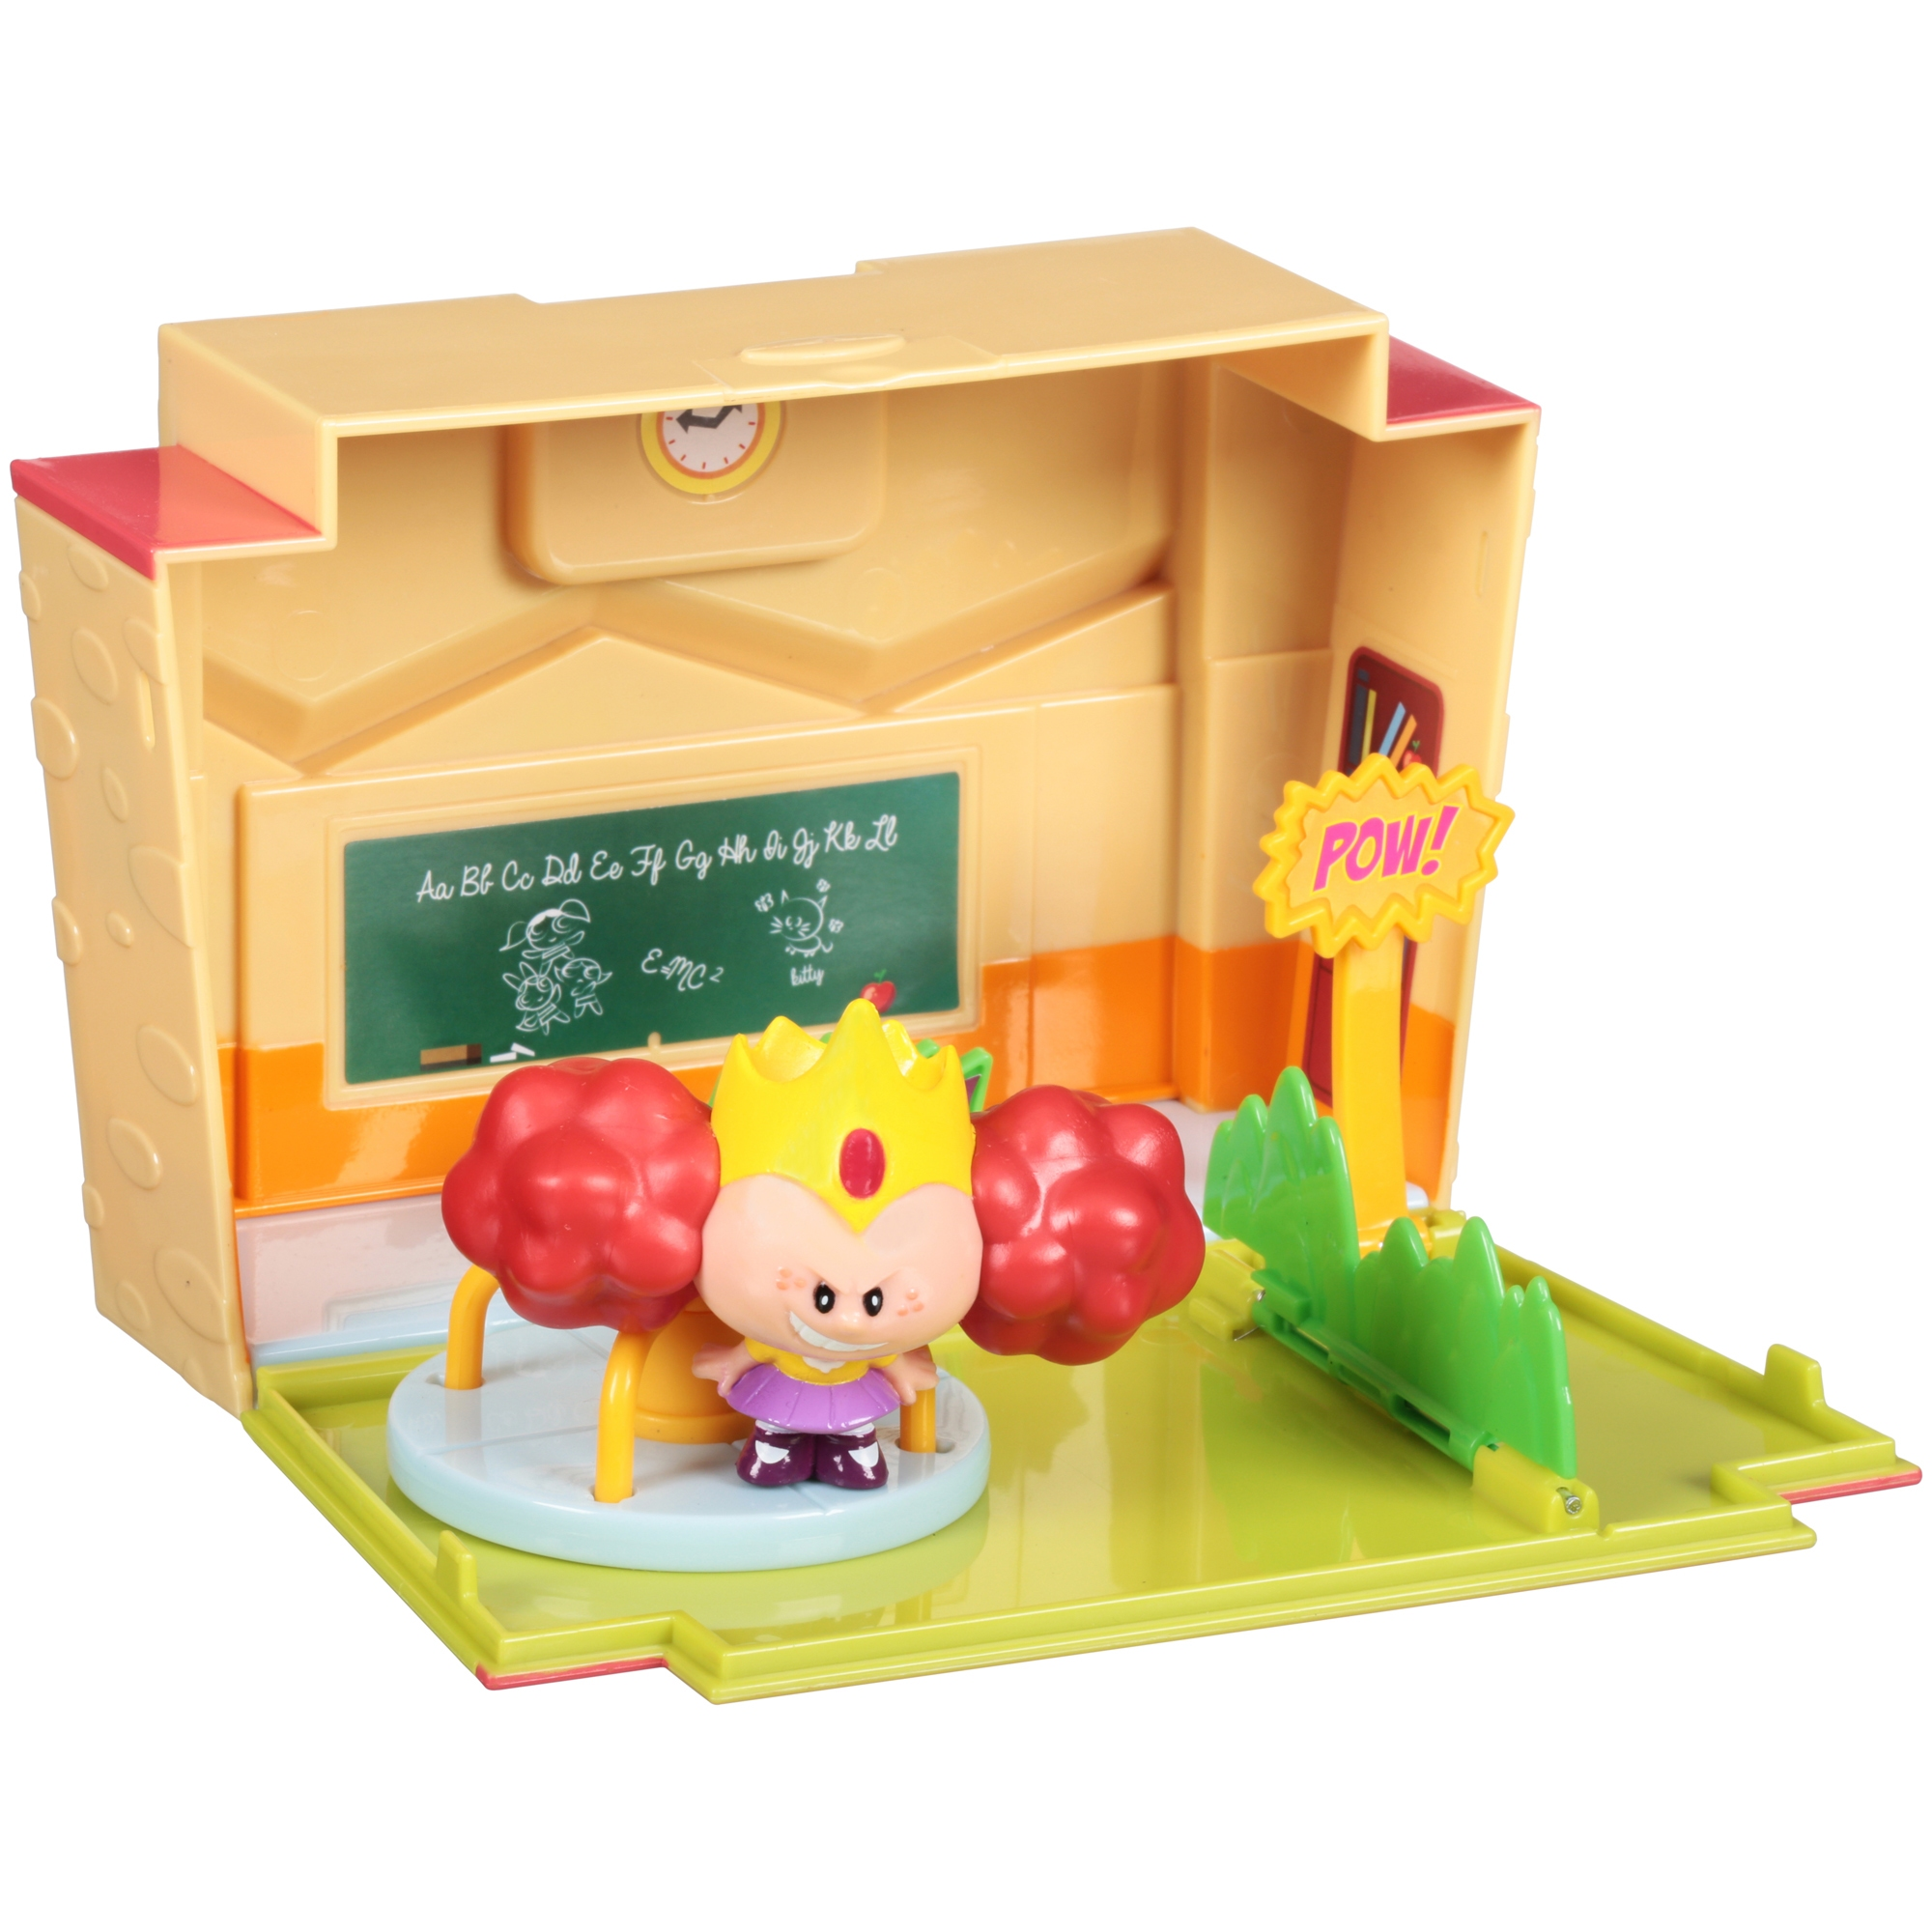 The Powerpuff Girls, Princess Morbucks Schoolyard Scramble Playset, by Spin Master